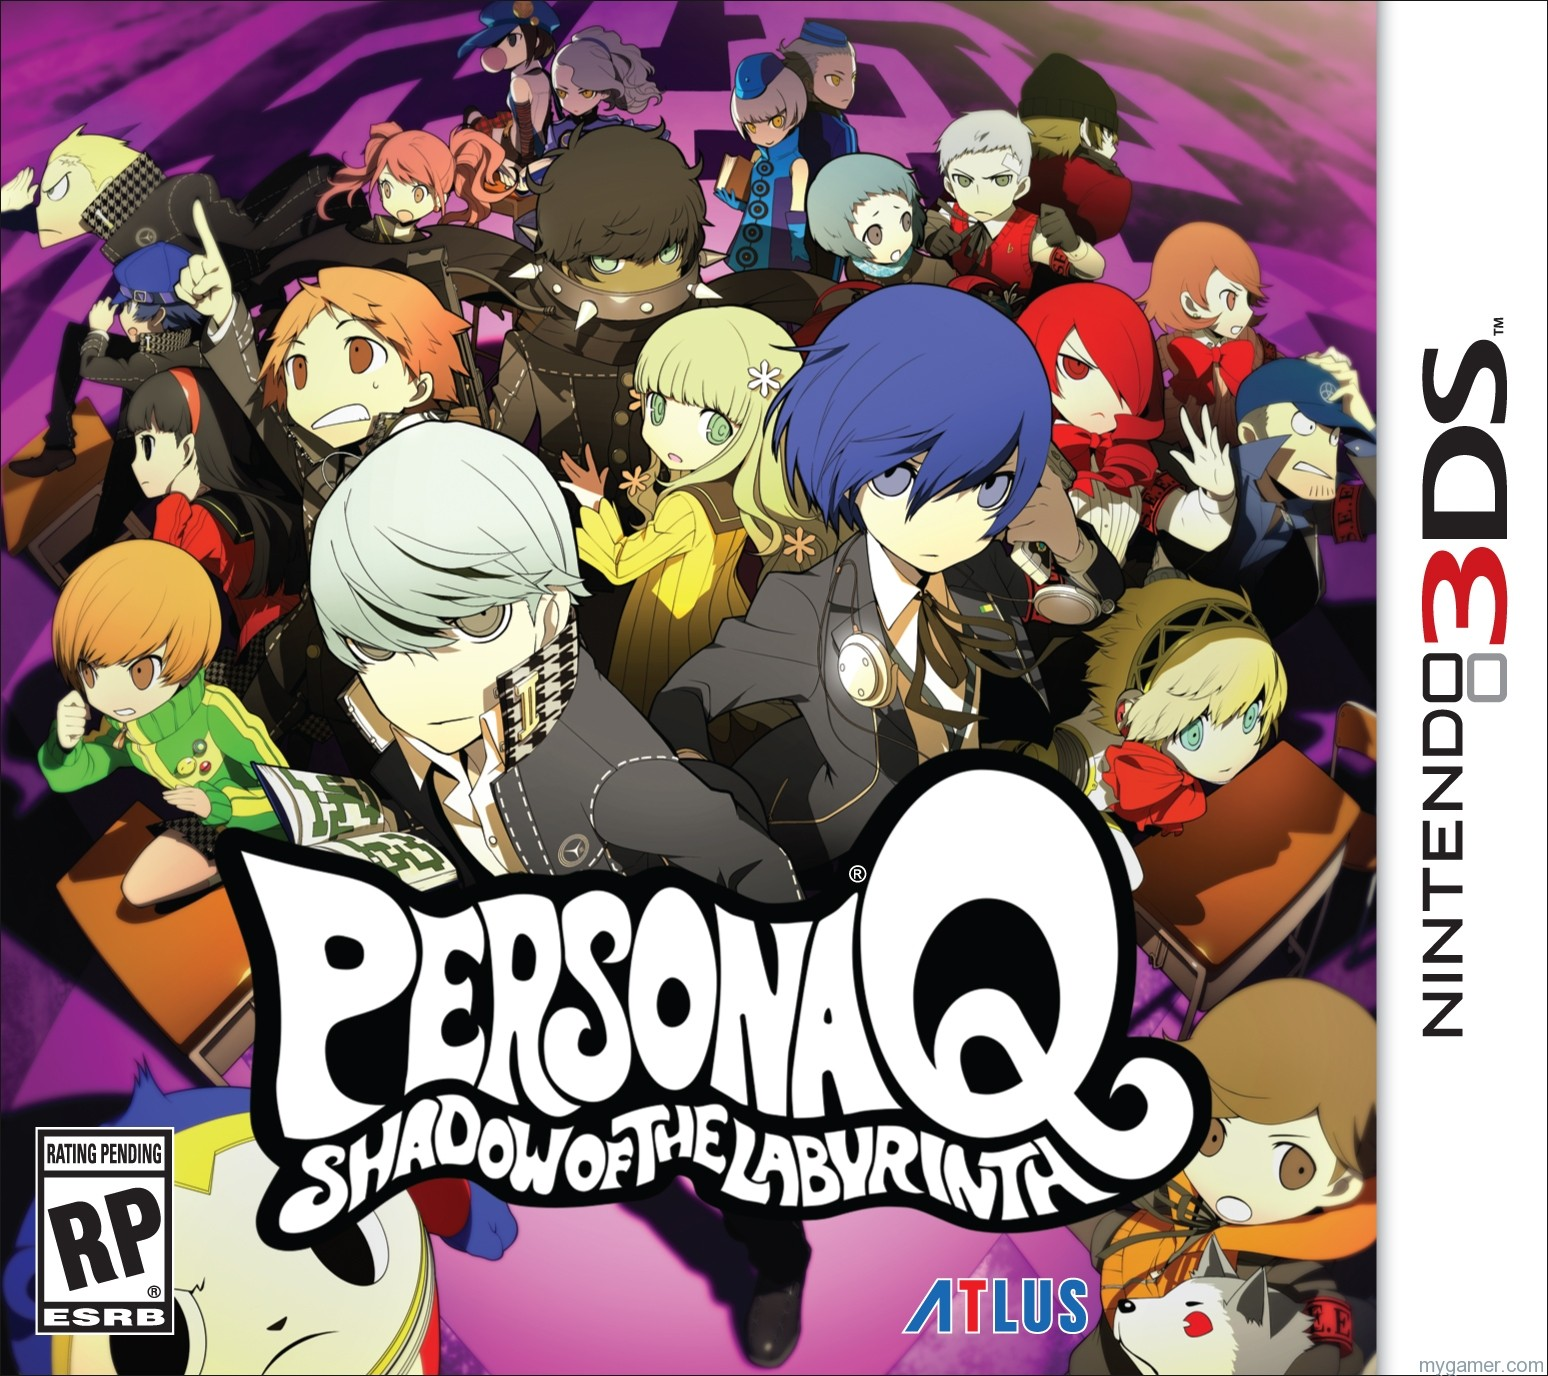 Persona Q Opening Movie Leaked Persona Q Opening Movie Leaked Personal Q Boxart